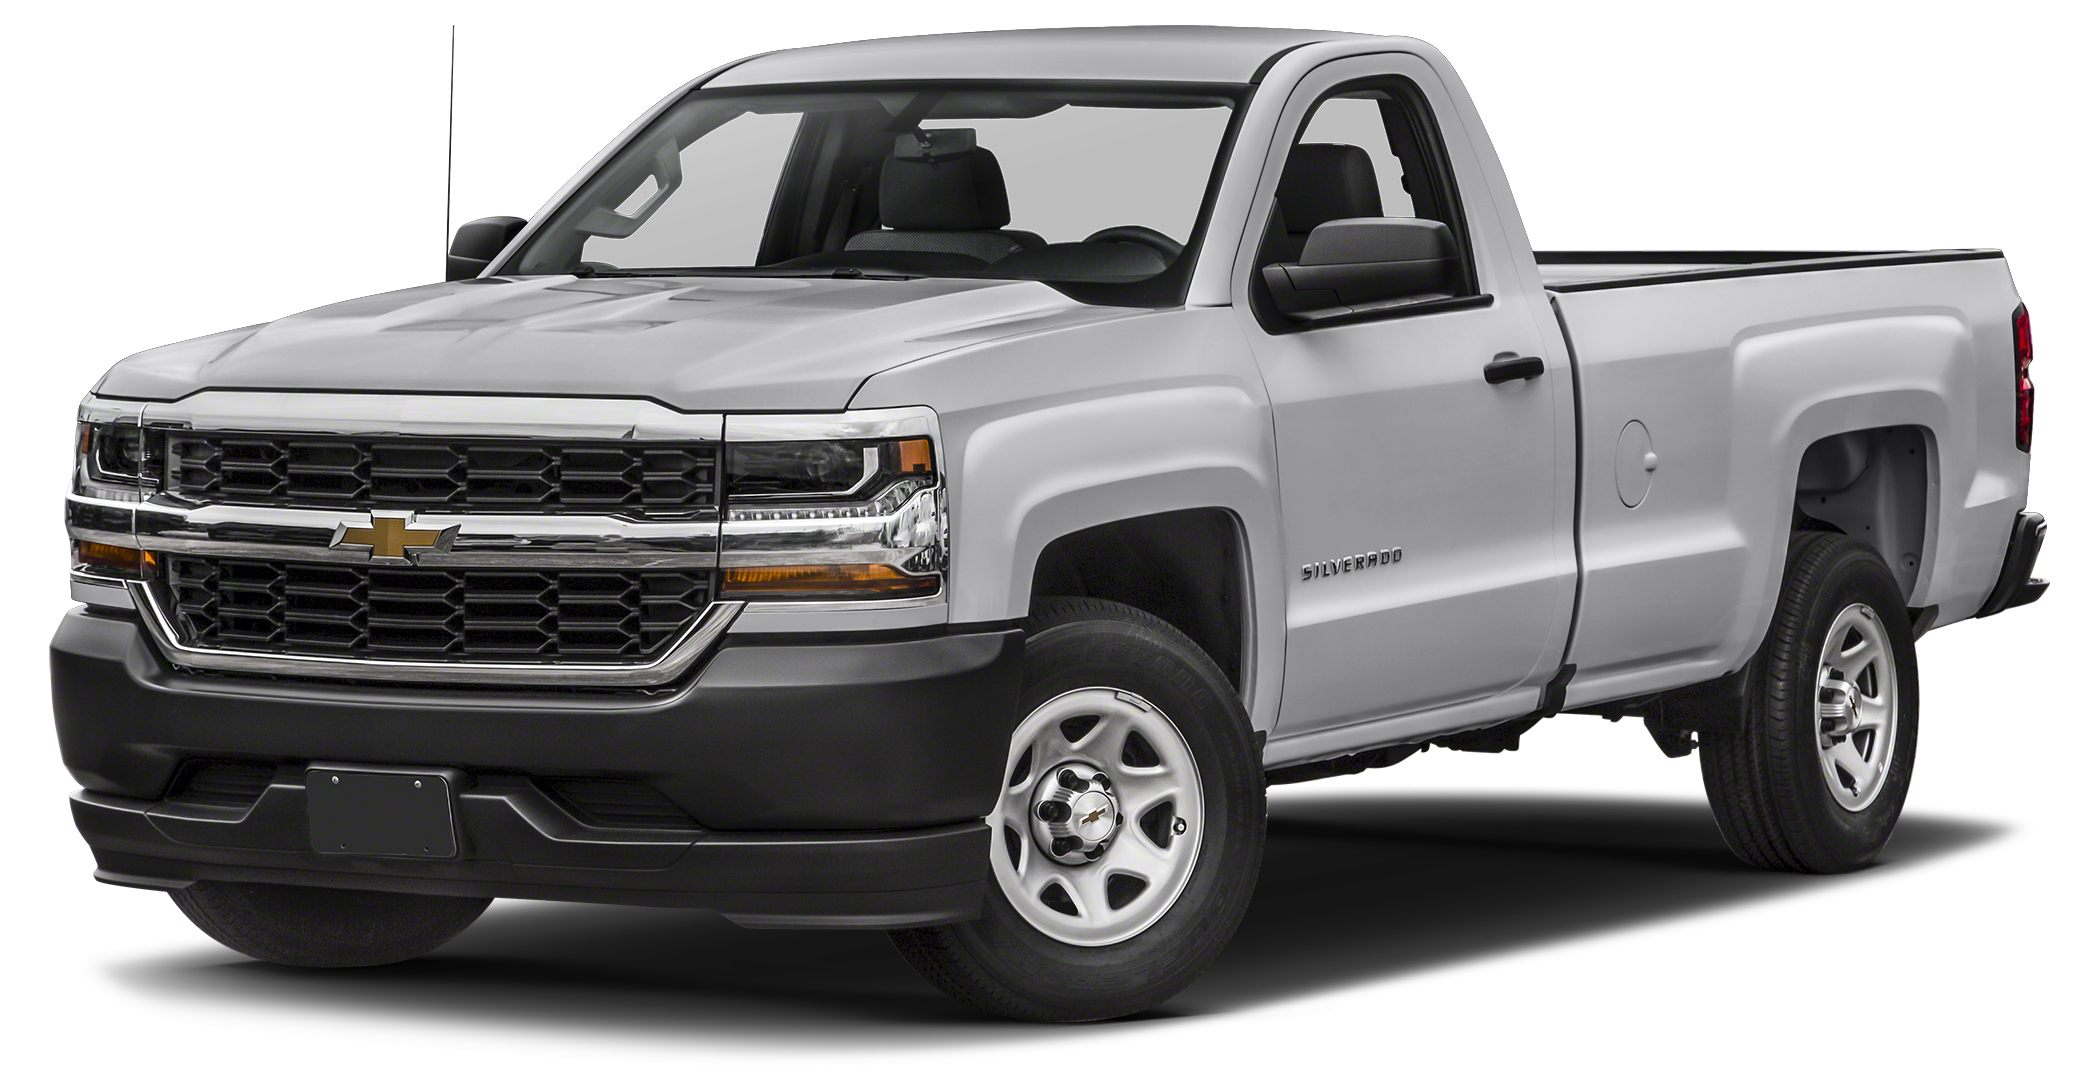 2017 Chevrolet Silverado 1500  Miles 0Color Silver Ice Metallic Stock VDFVH4 VIN 1GCNCNEH6HZ